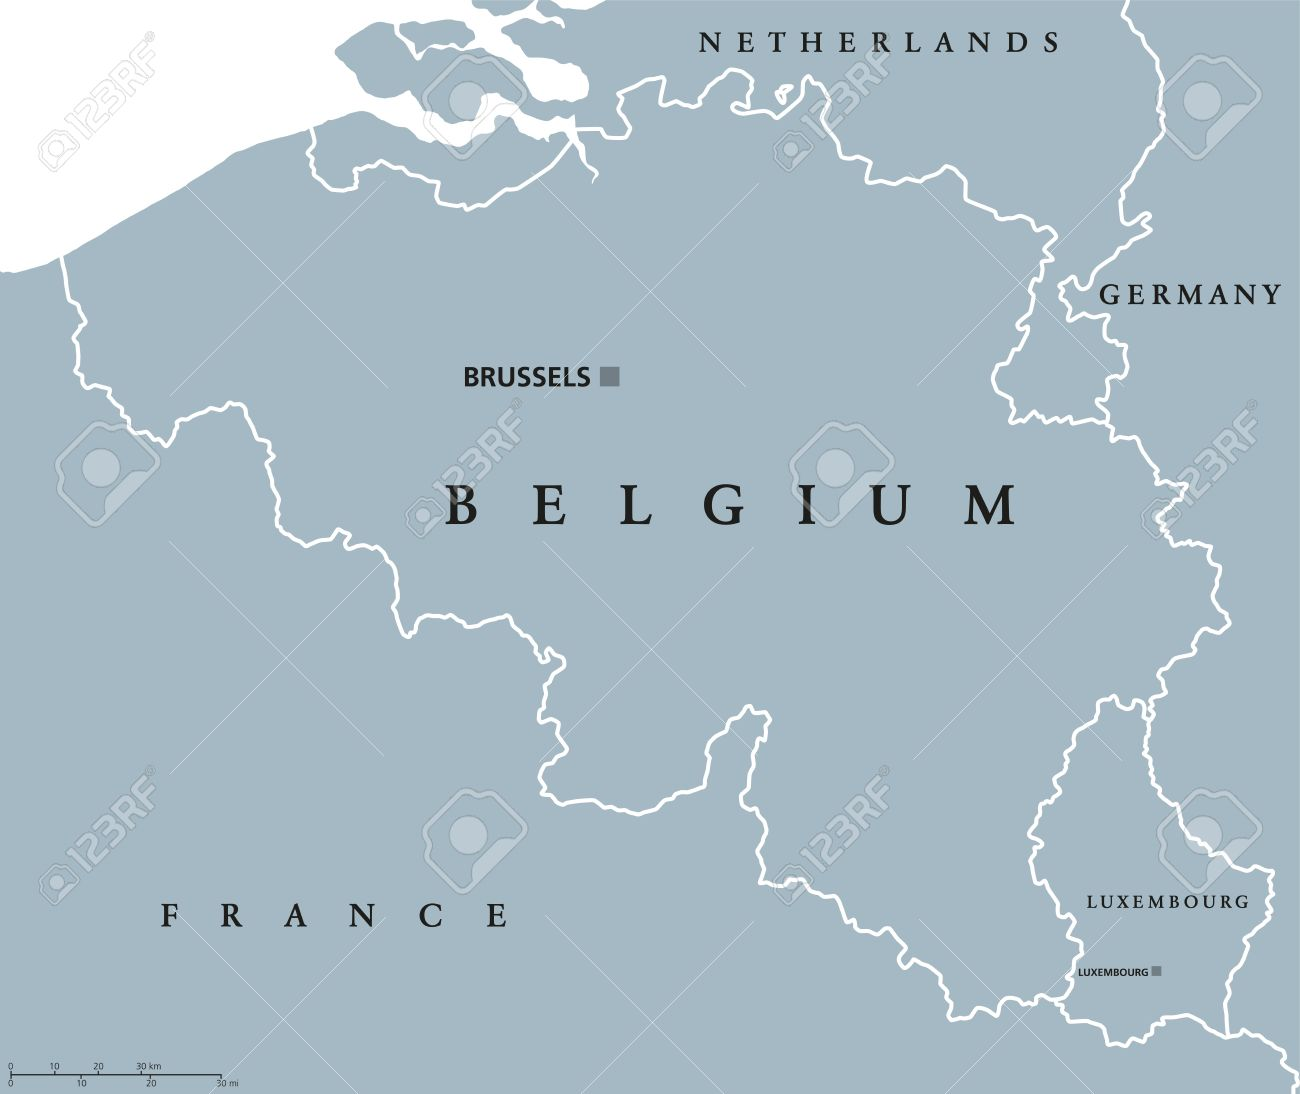 Map Of Germany Luxembourg Belgium.Belgium And Luxembourg Political Map With Capitals Brussels And